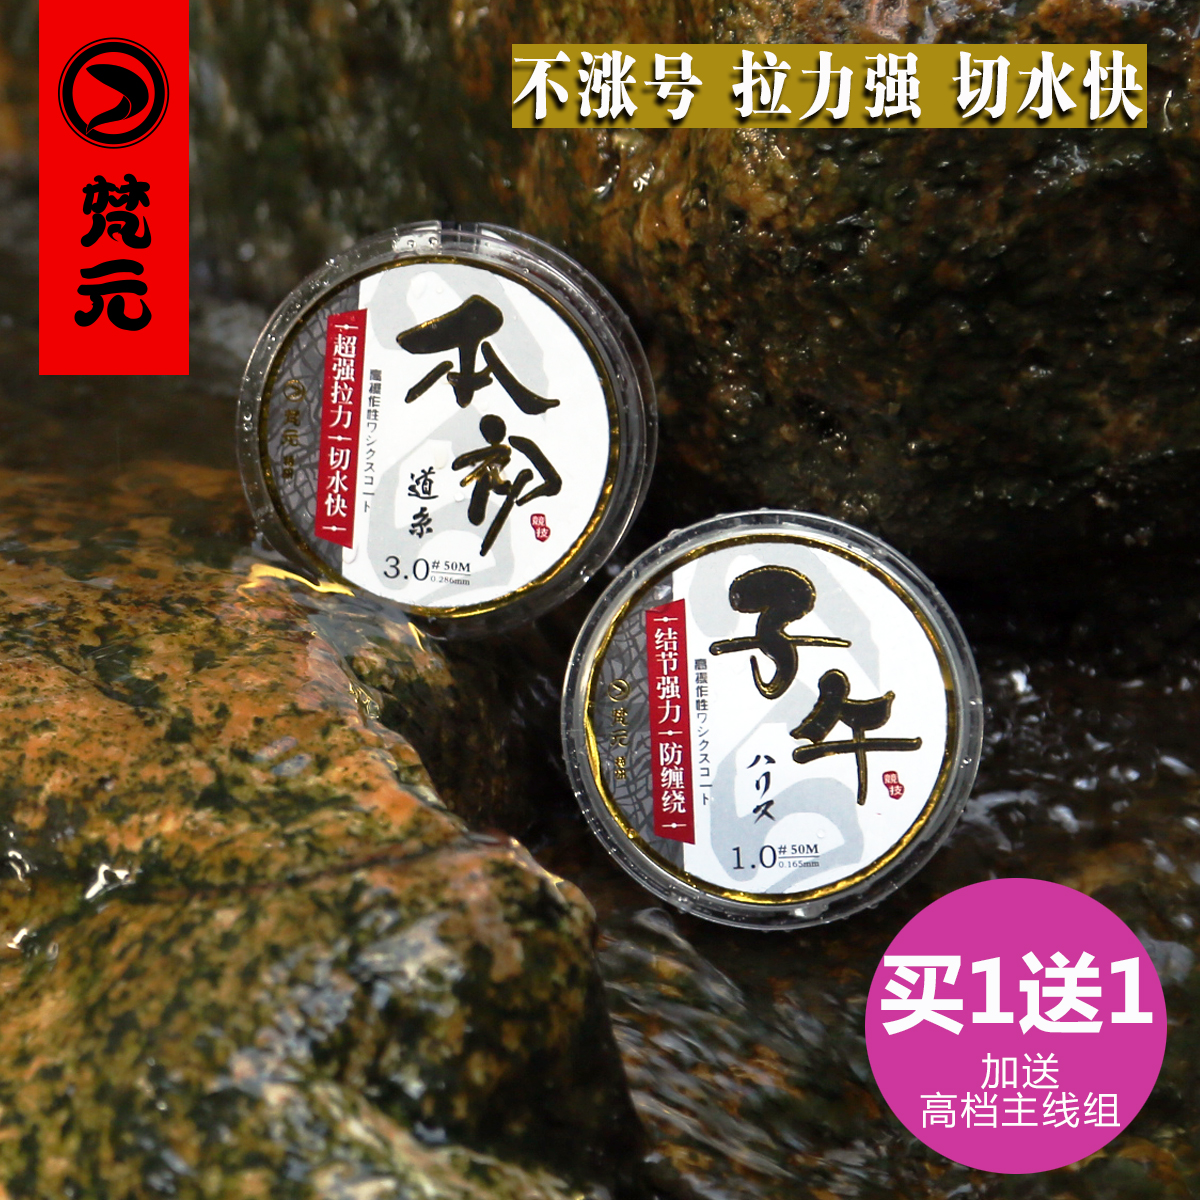 Main fishing line suit japanese raw silk strands of nylon fishing line 50 m taiwan fishing fishing line super rally road department